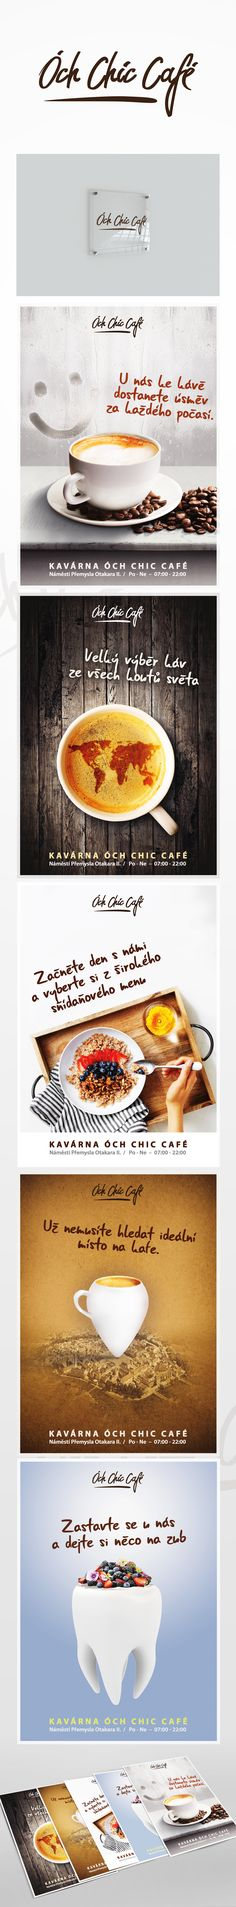 "Podívejte se na můj projekt @Behance:  ""Óch Chic Cafe - Logo + mini campaign"" https://www.behance.net/gallery/59262233/Och-Chic-Cafe-Logo-mini-campaign"